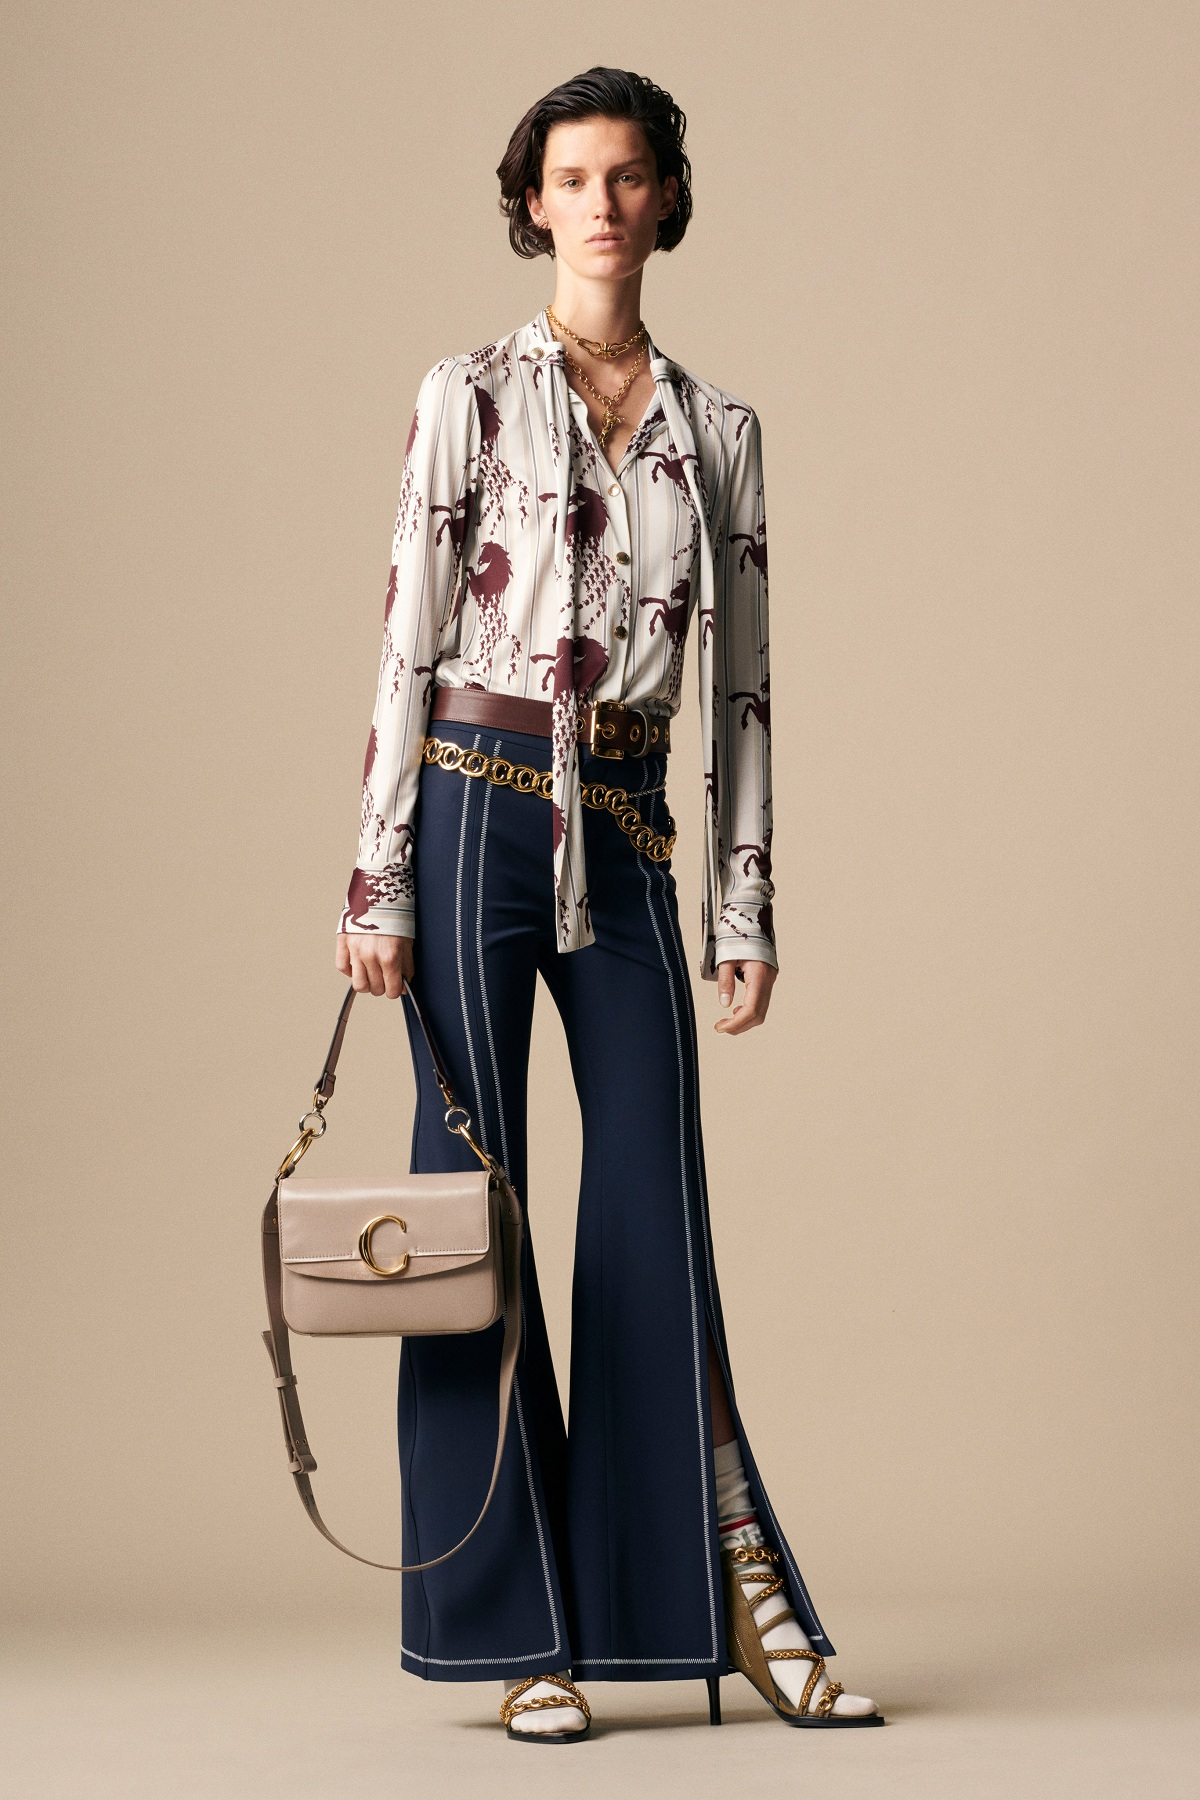 Chloé Resort 2019 Fashionela